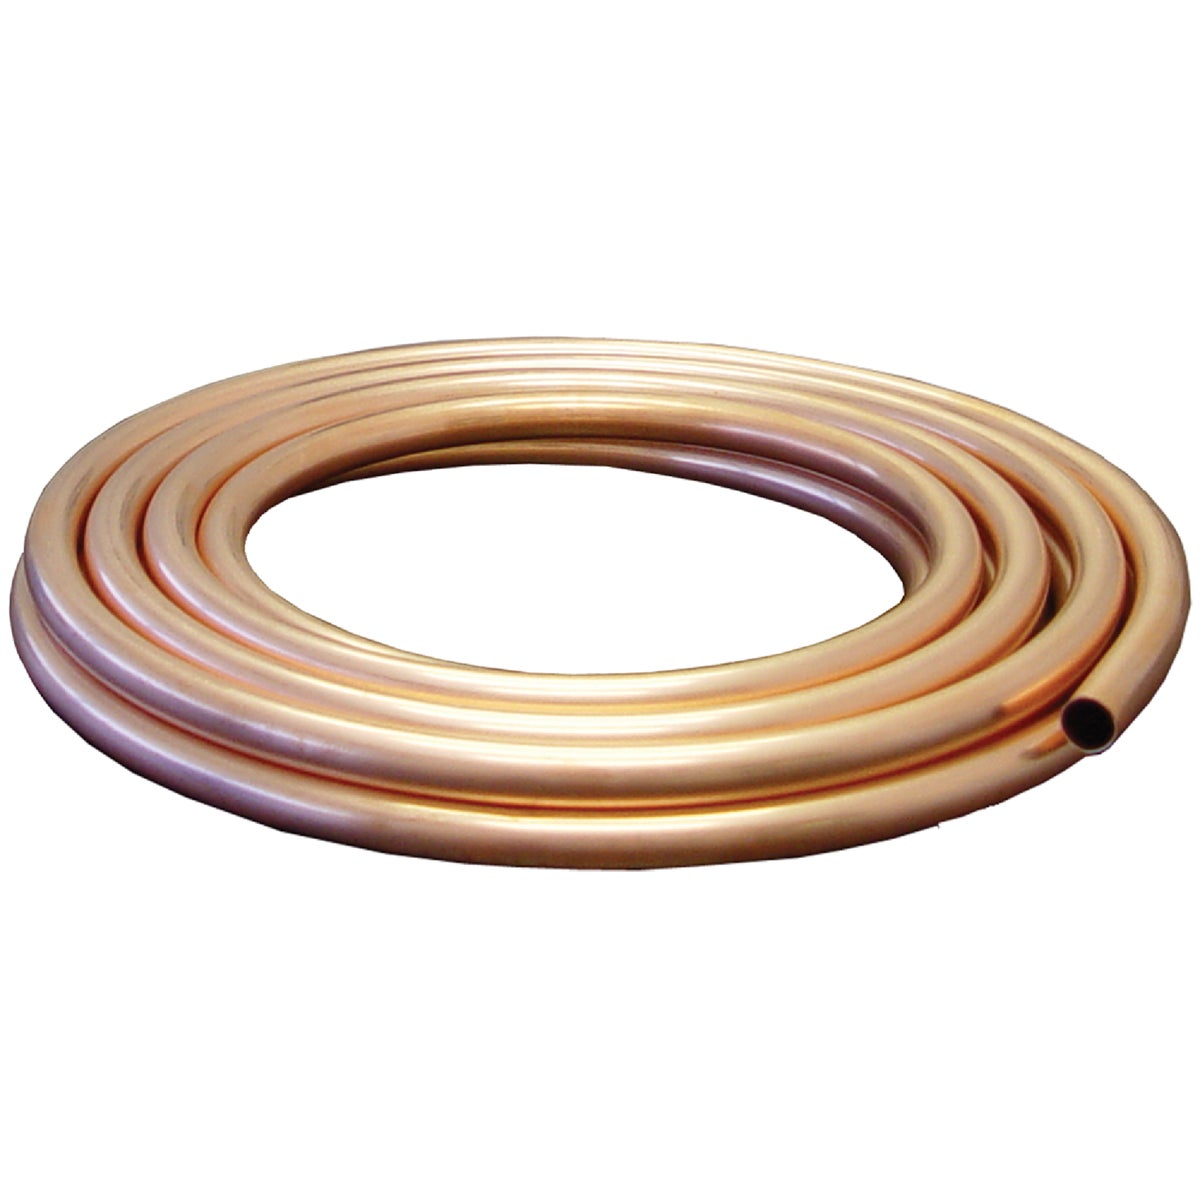 "1/4""ODX25'UG COPPER COIL - UT04025 by Mueller B K"